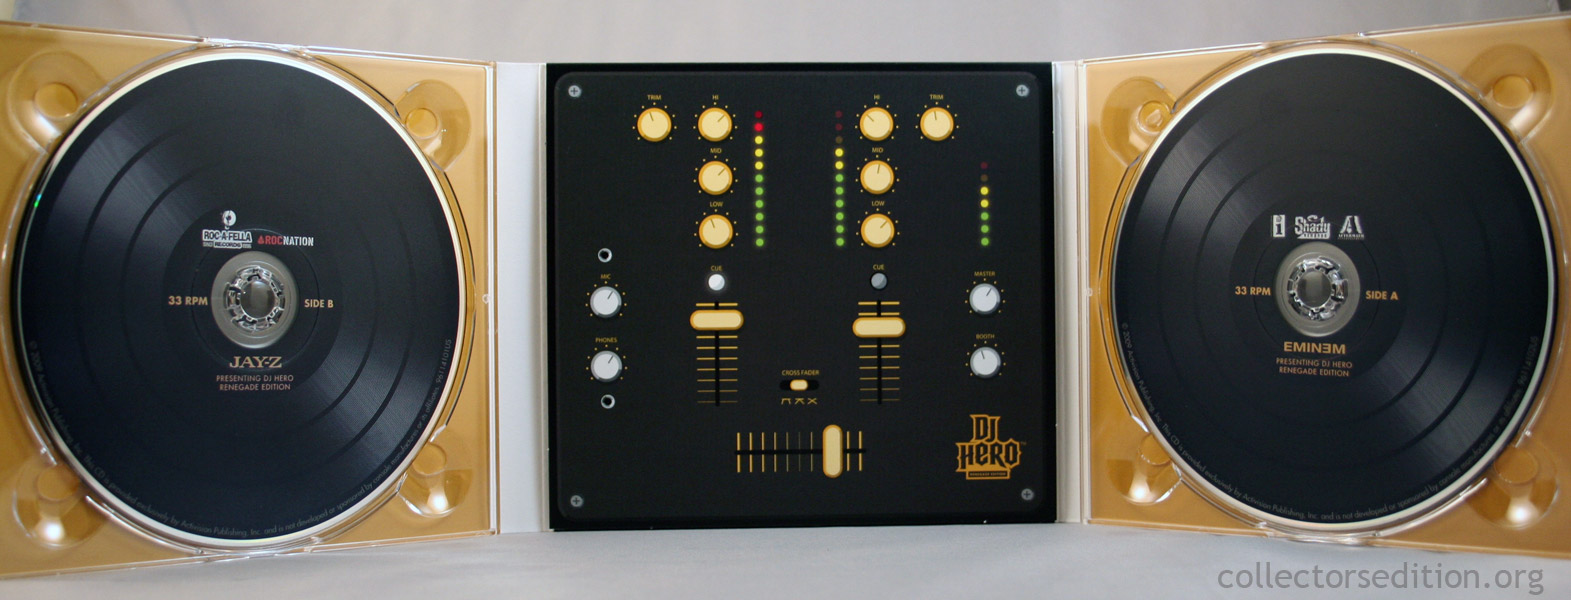 Collectorsedition. Org » dj hero renegade edition (360) [ntsc].